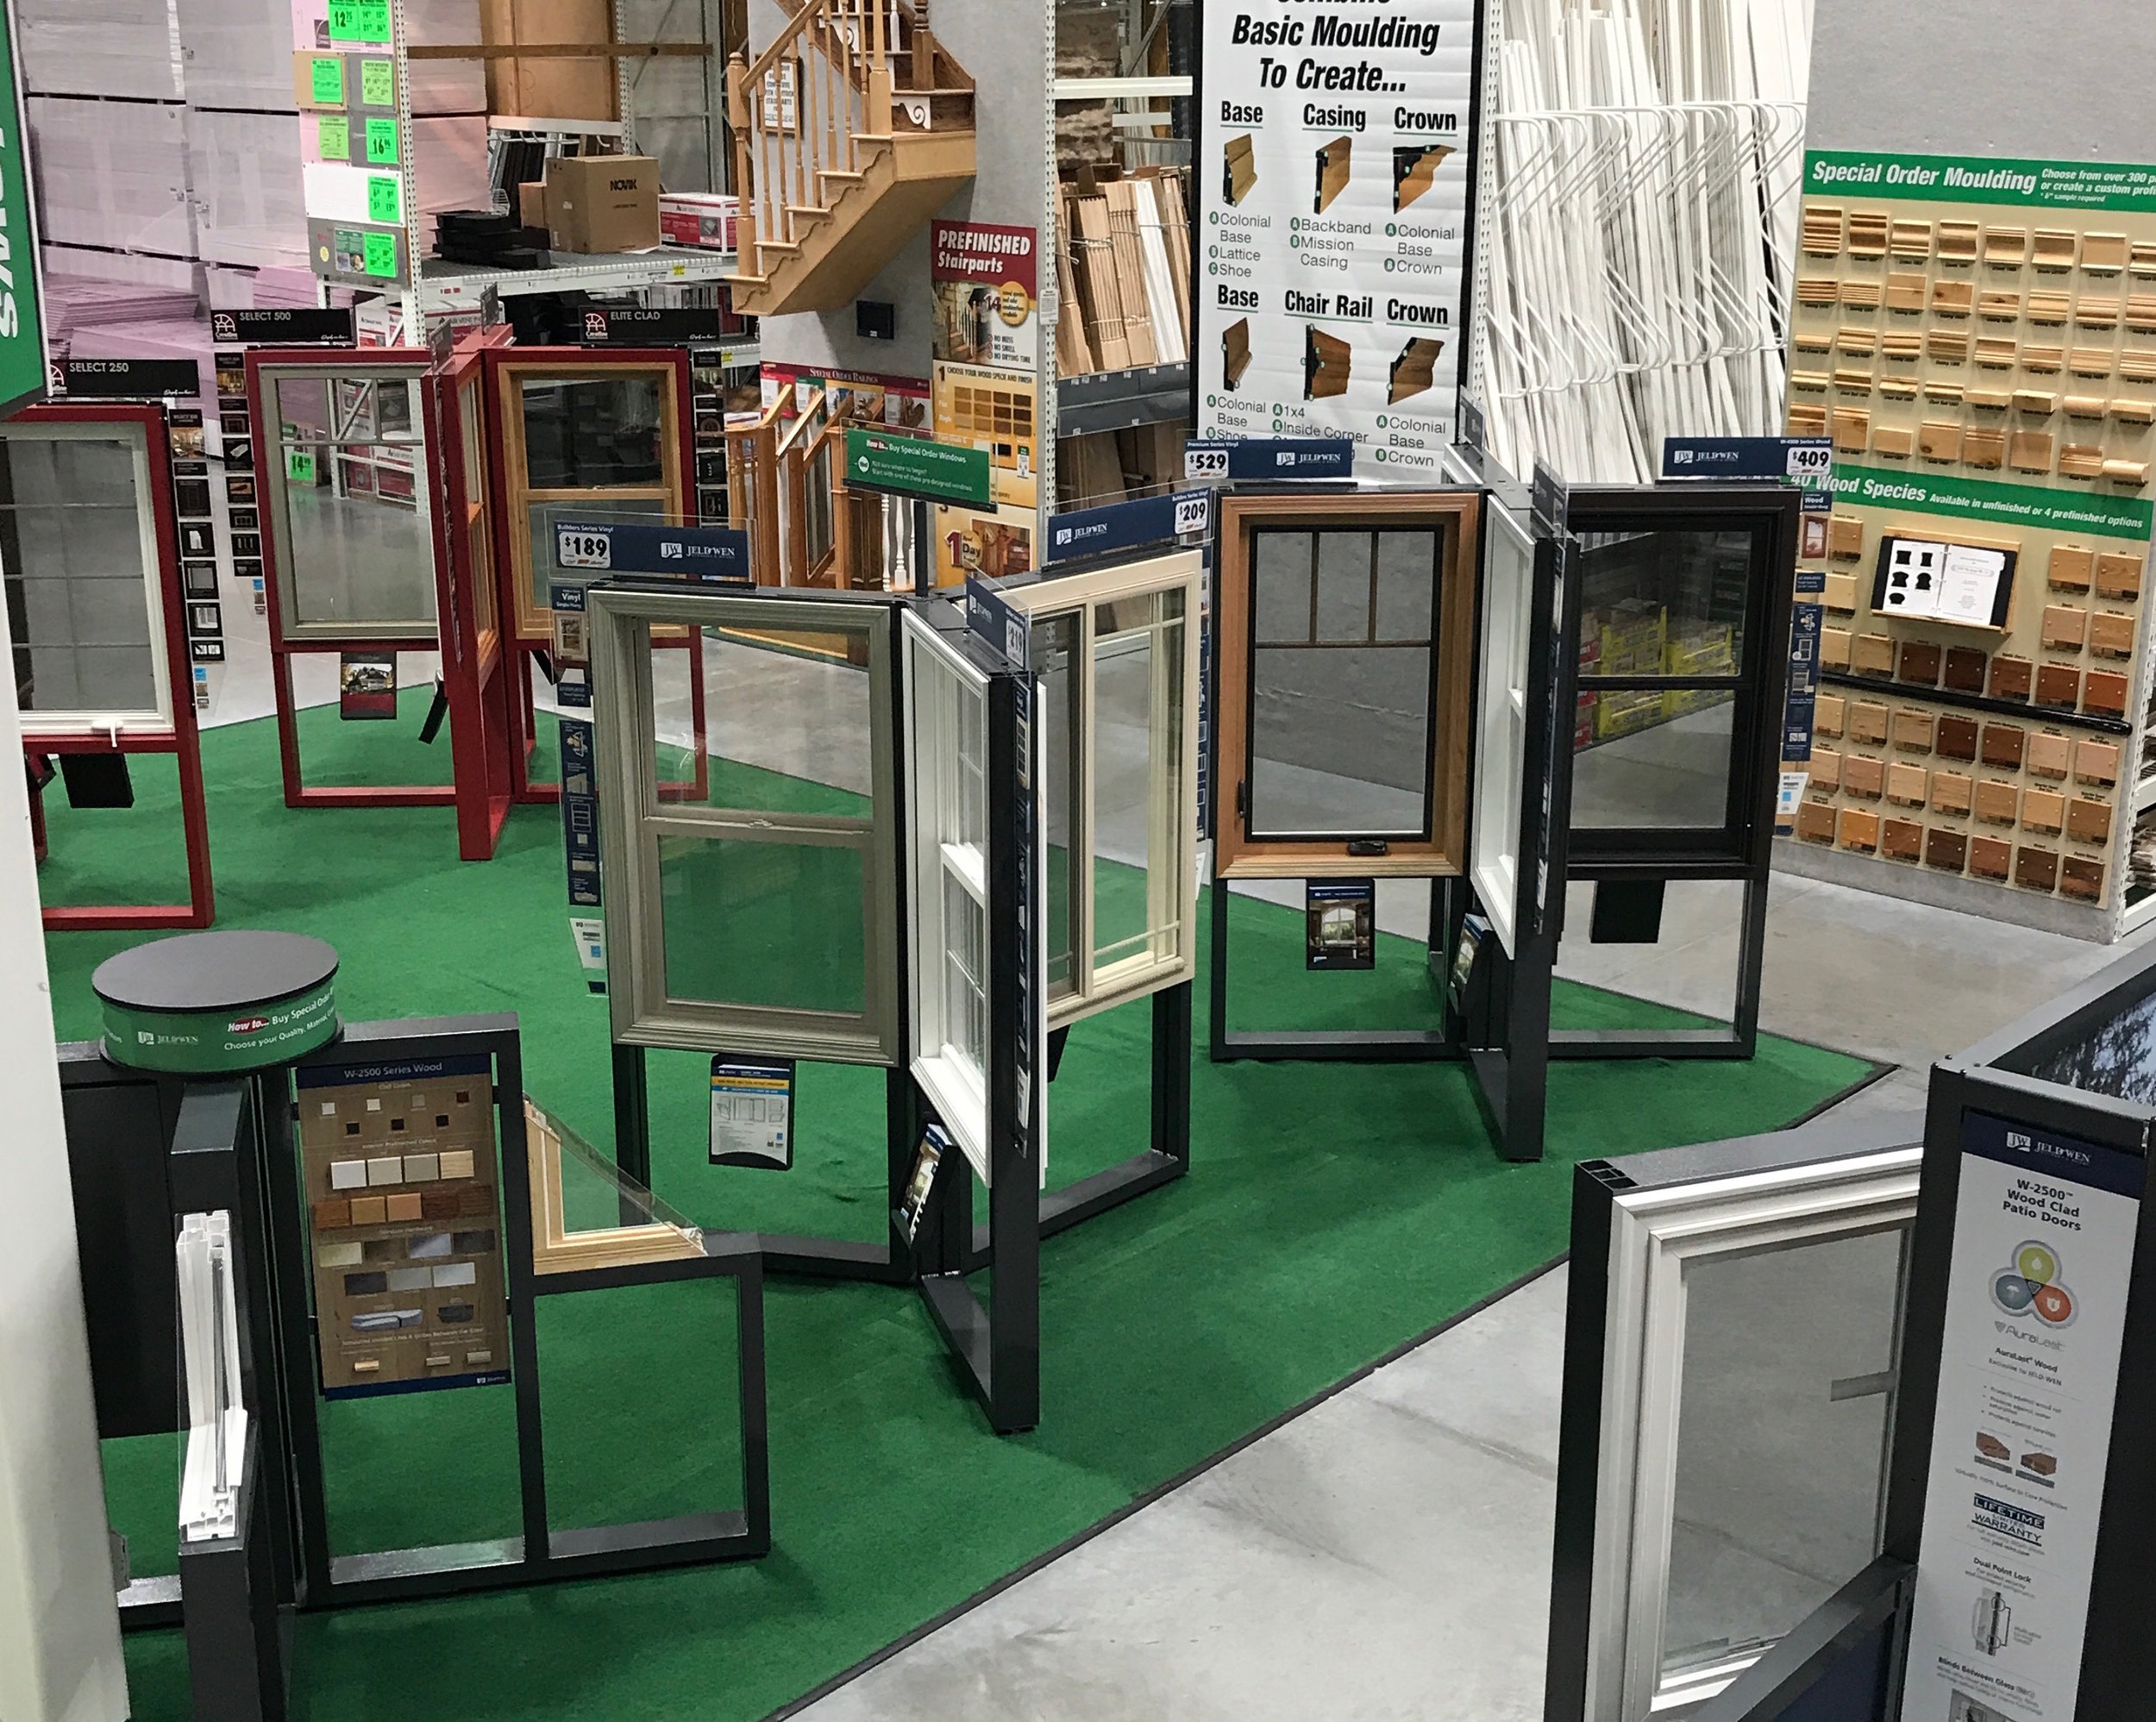 JELD-WEN Retail Fixture Program   When JELD-WEN, Inc. needed to reinvent their current Retail Fixture Program for Menards Stores, AXIS value-engineered and produced a series of customizable fixture options.